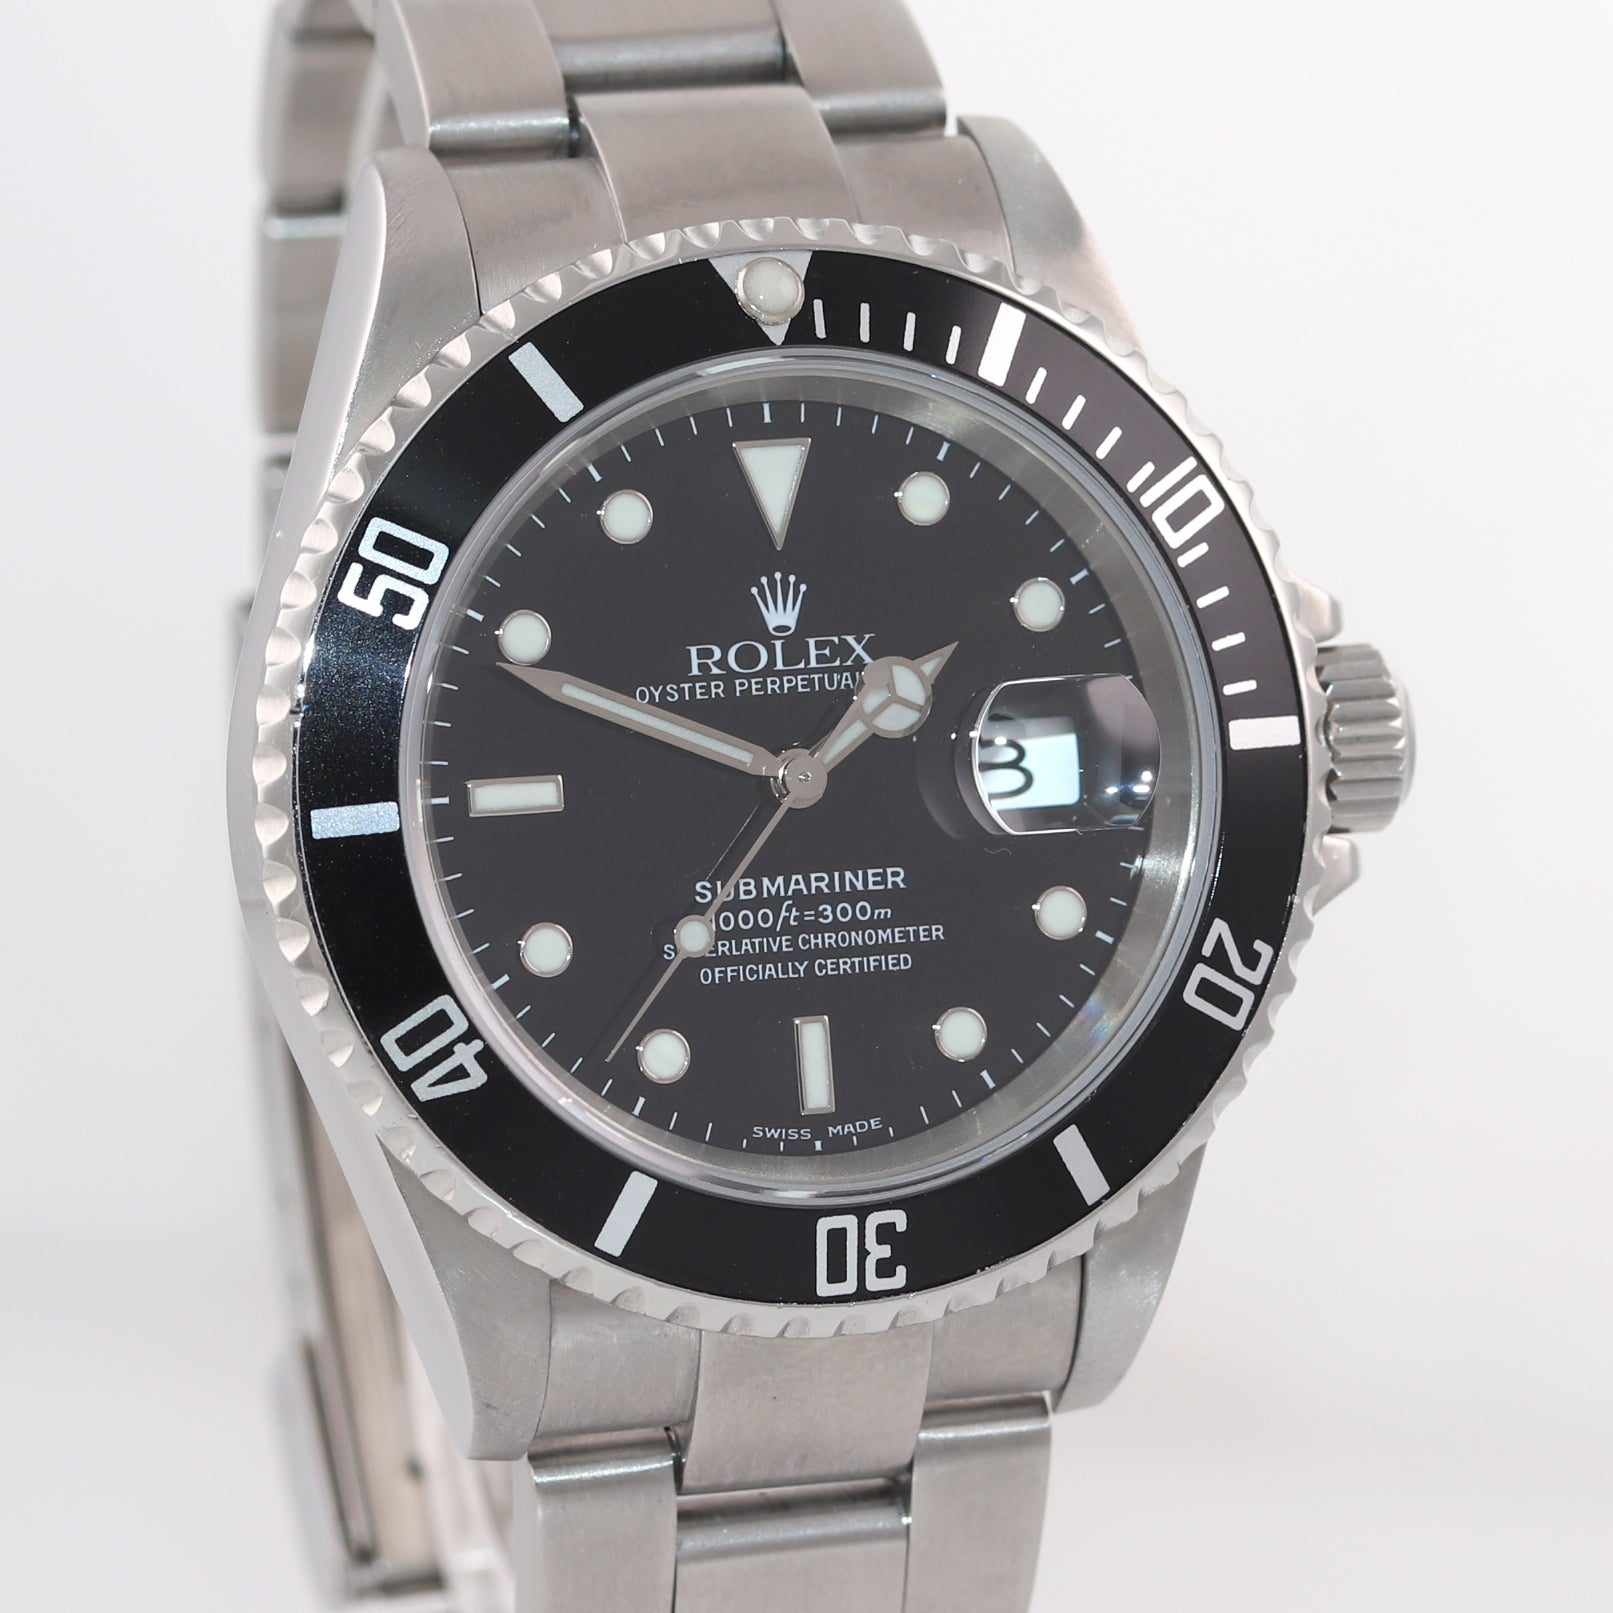 MINT 2005 Rolex Submariner Date 16610 Steel NO HOLES Pre-Ceramic Watch Box